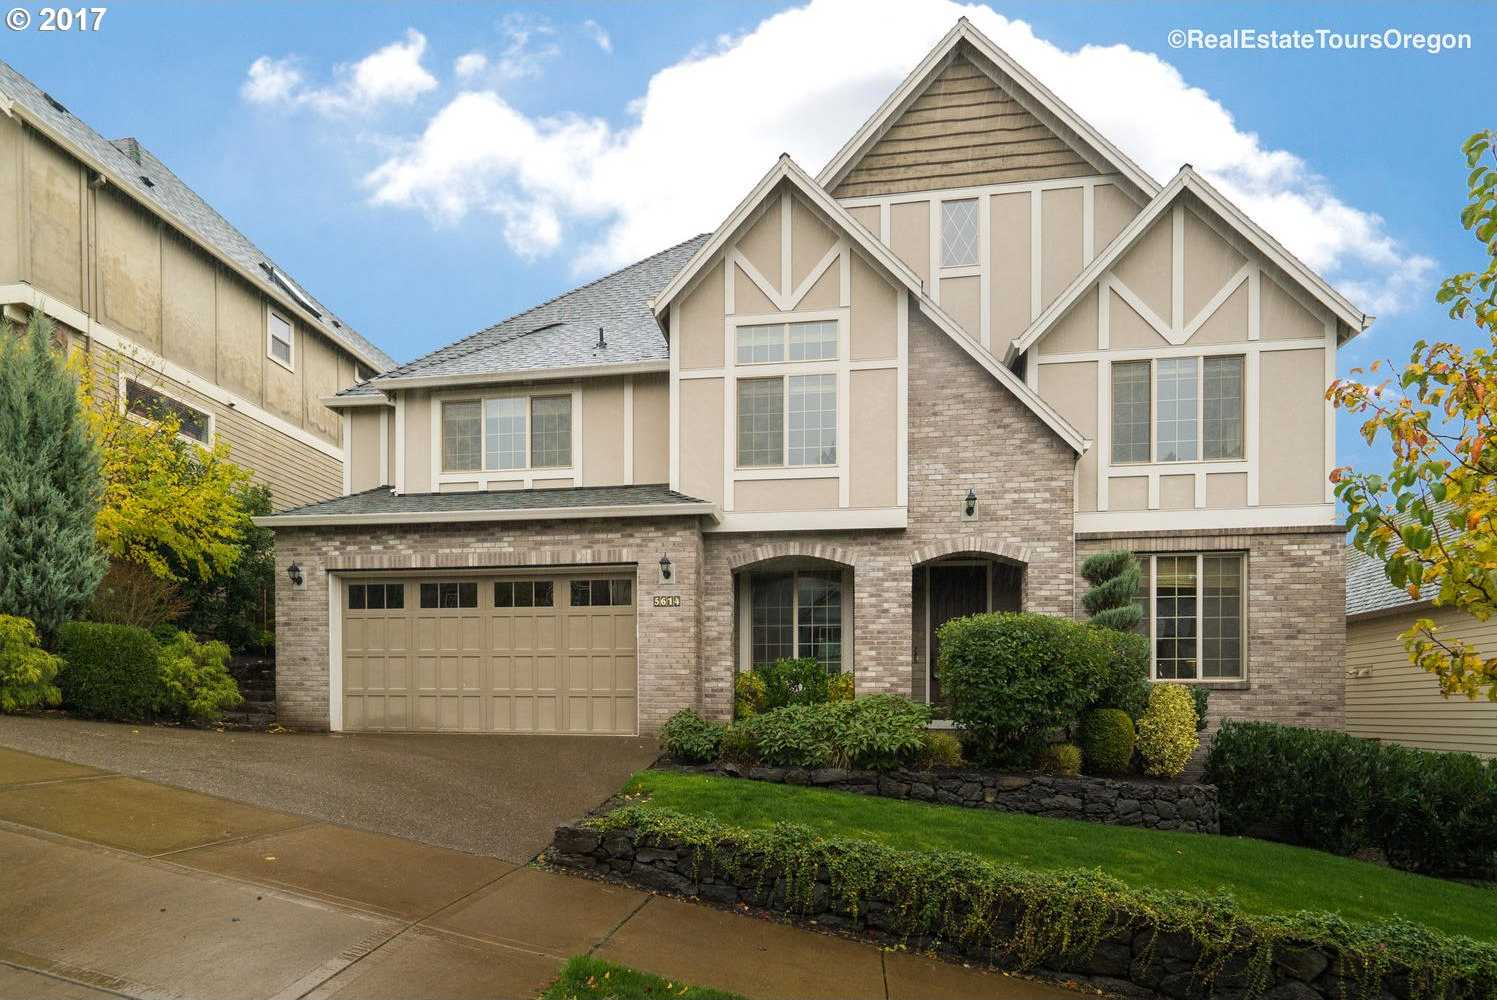 $669,698 - 4Br/3Ba -  for Sale in Arbor Heights/bethany, Portland